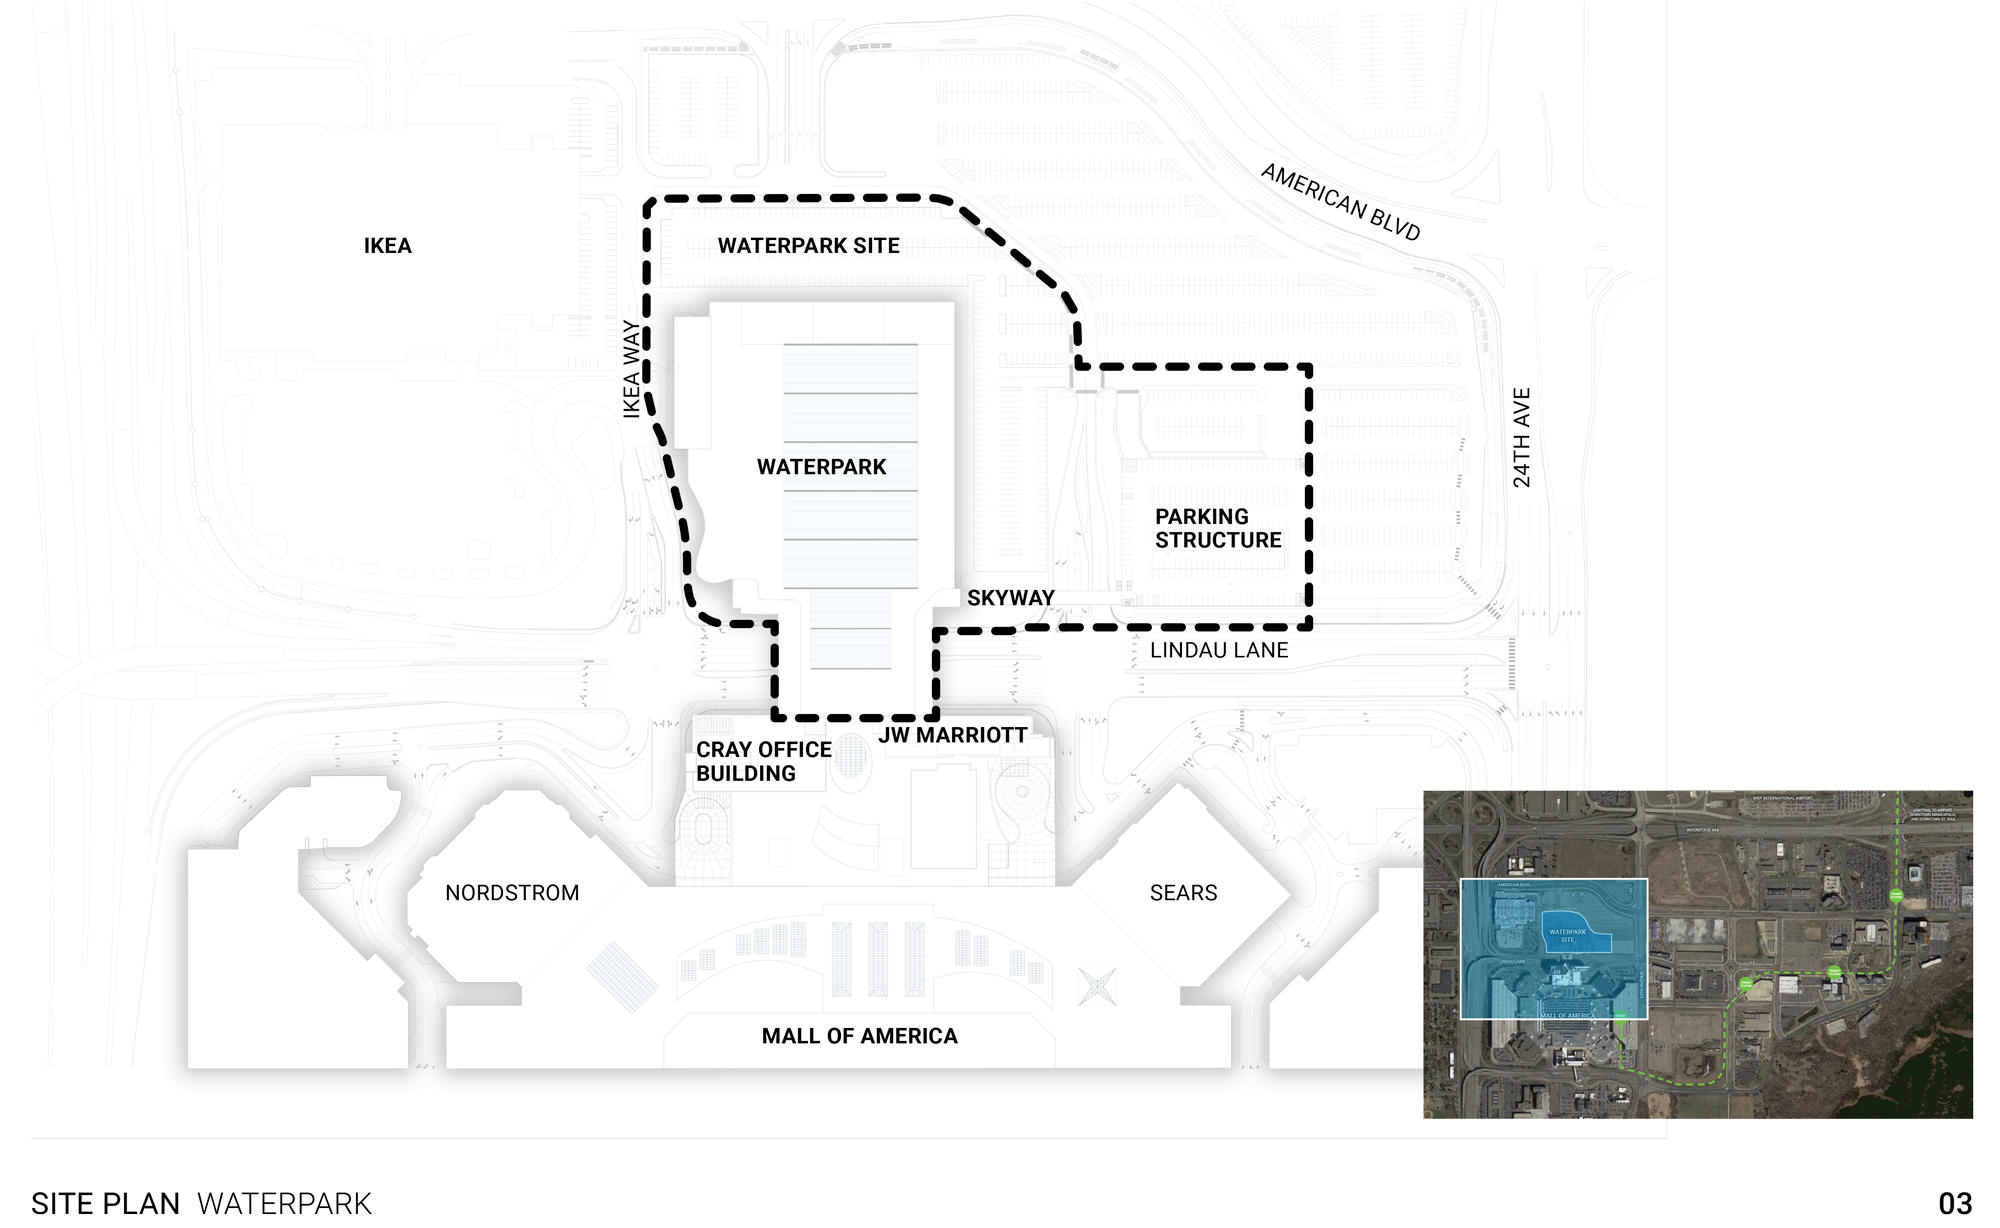 Quick Facts about the Water Park Project | City of ... on towson town center store map, short pump town center store map, chandler fashion center store map, white marsh mall store map, bellevue square store map, broadway at the beach store map, mall of new hampshire store map, stonebriar mall store map, northridge fashion center store map, tucson mall store map, boynton beach mall store map, miller hill mall store map, scottsdale fashion square store map, king of prussia mall store map, meridian mall store map, plaza las americas store map, eagan outlet mall store map, memorial city store map, colorado mills store map,